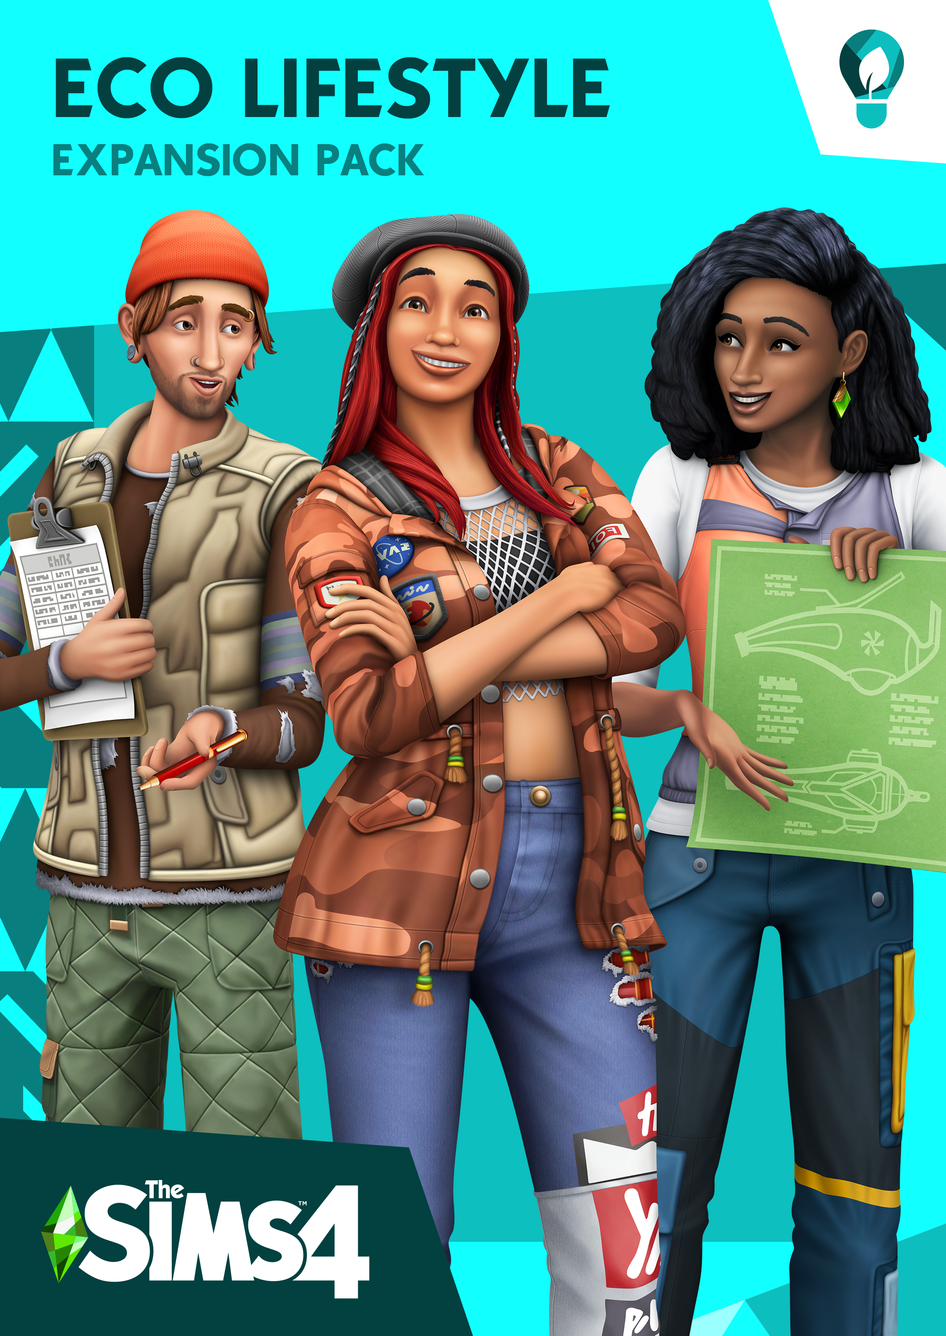 The Sims 4 Eco Lifestyle Expansion Pack - Origin